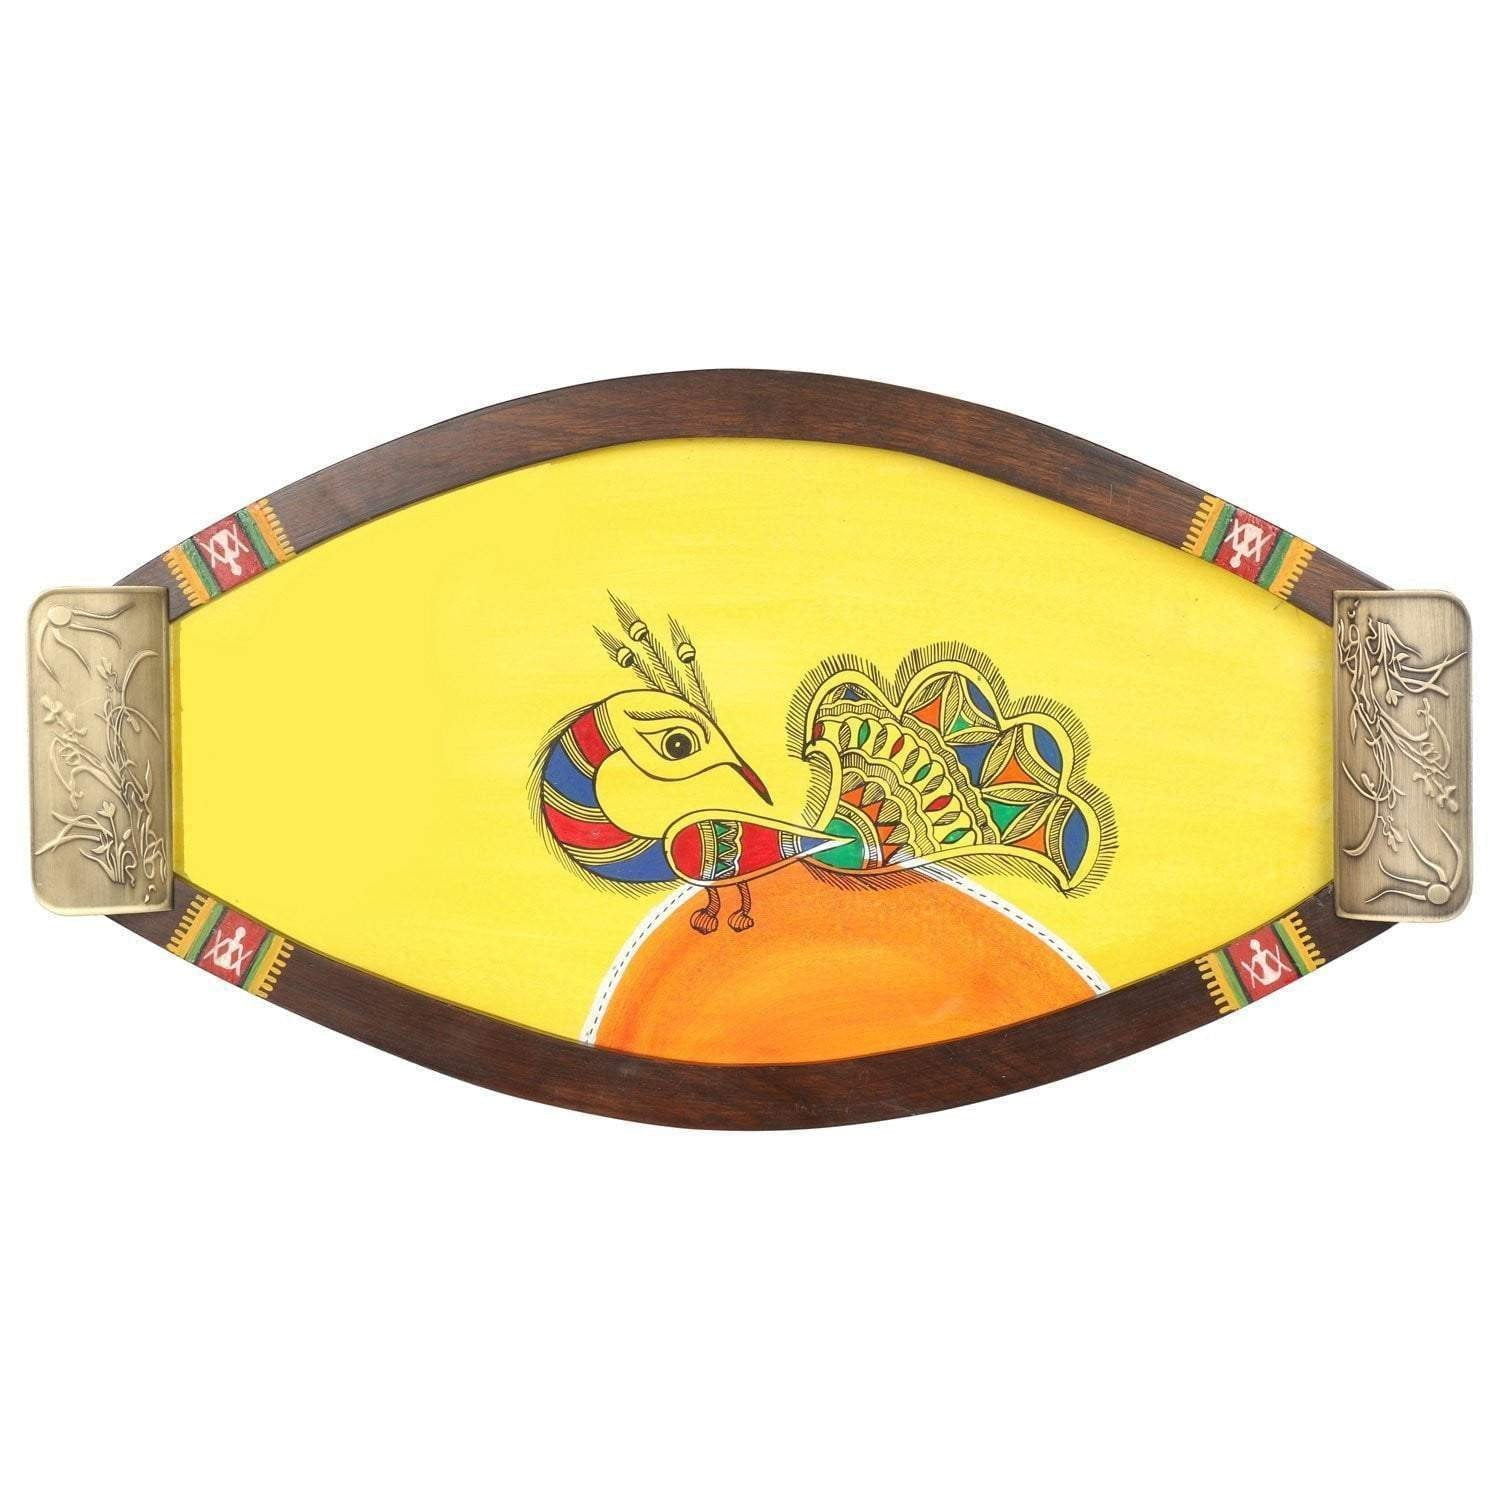 Decorative Oval Shaped Teak Wood Tray With Brass Handle